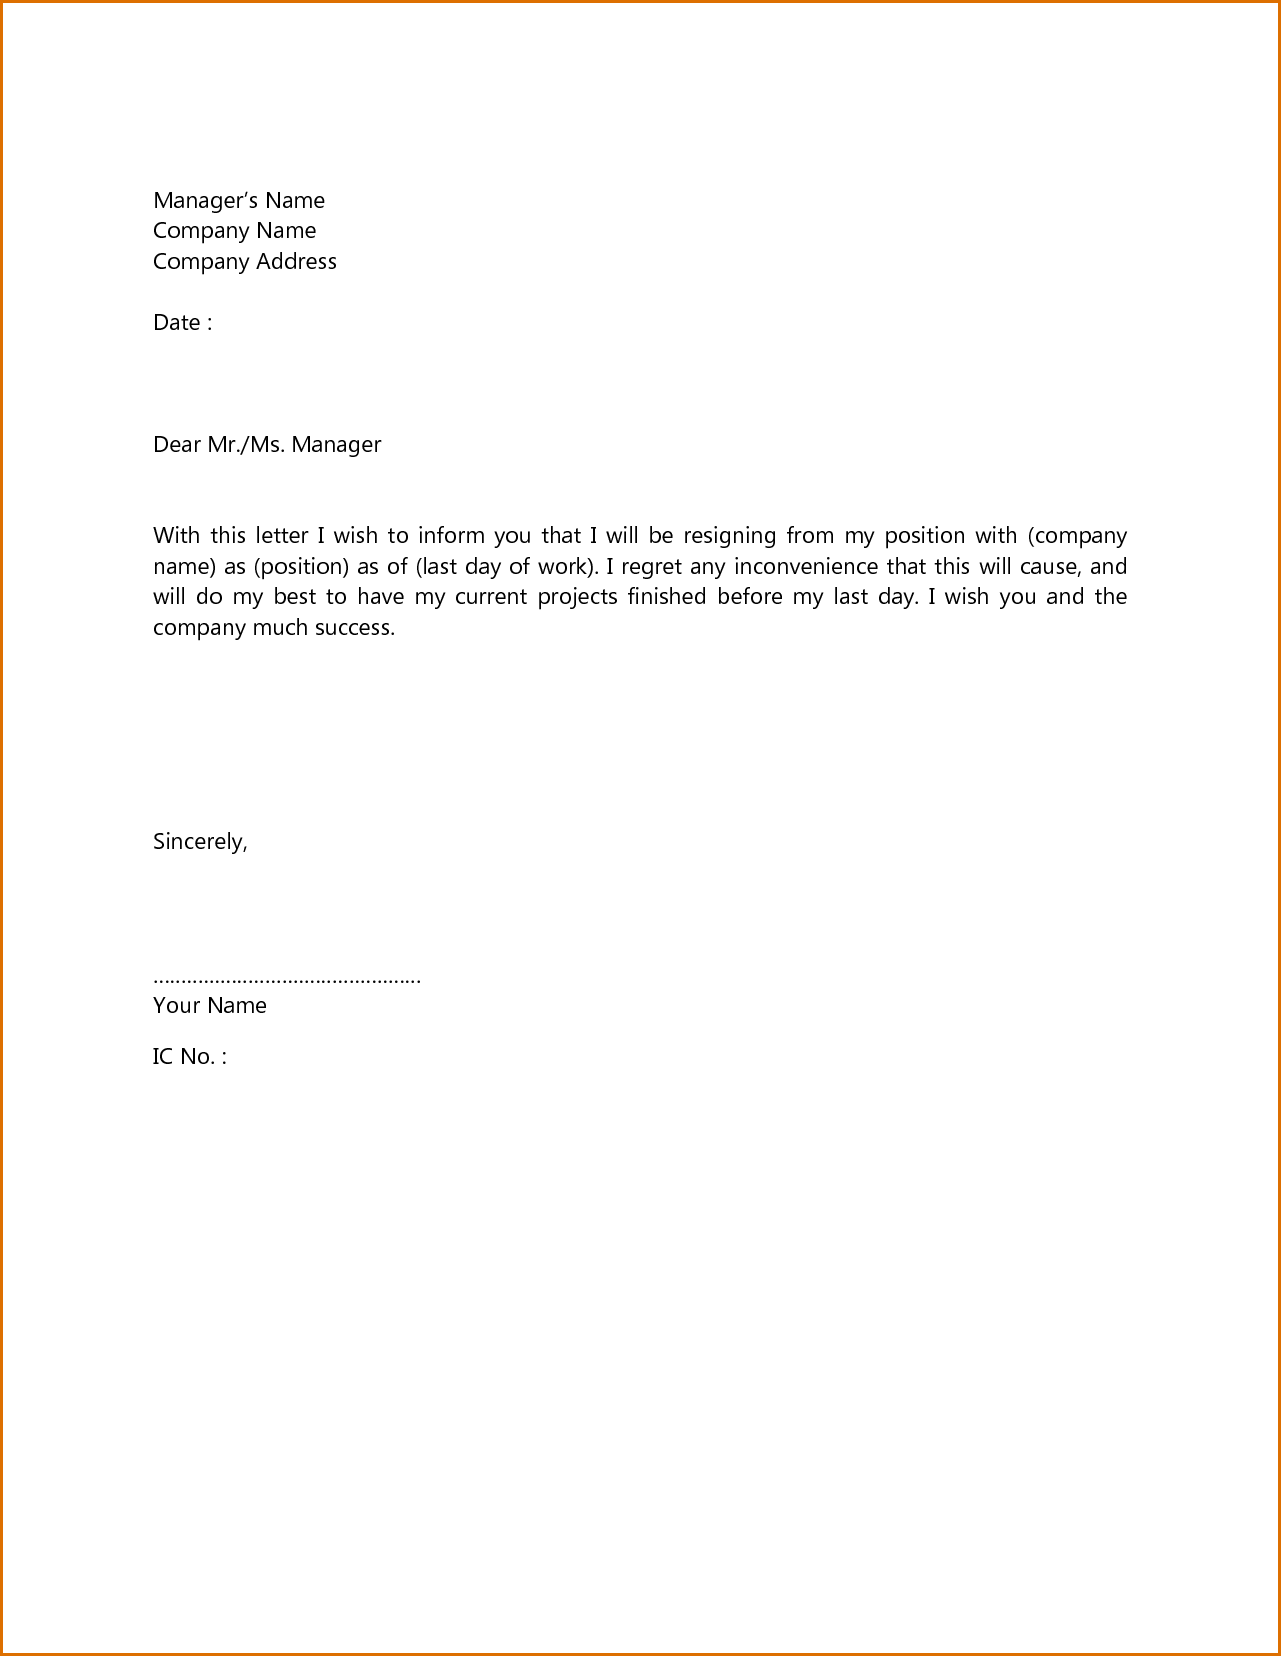 simple resignation letter sample with reason simple format of resignation letter resume layout 2017 25394 | af8cc1f7a8e50edb1bcd9d5bfab0b80e